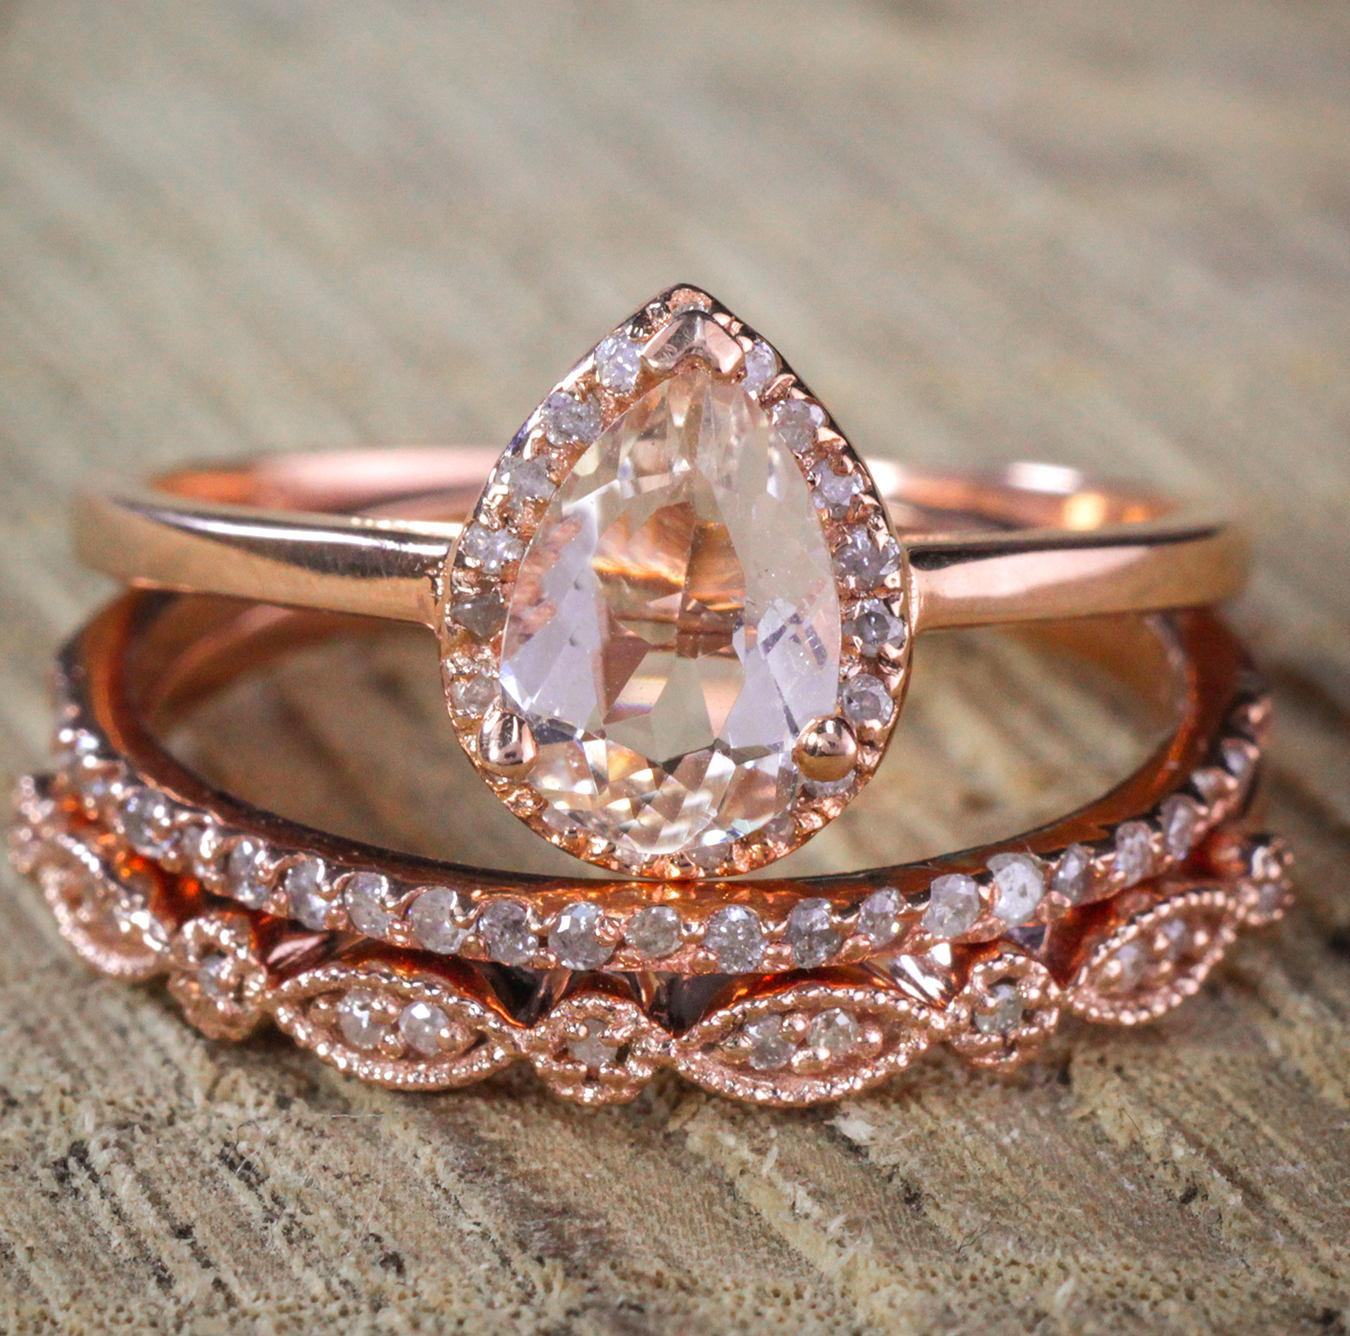 Sale on 2.25 carat Pear shape Morganite and Diamond Halo Trio Bridal Wedding Ring Set Antique Vintage Design Milgrain in... by JeenJewels